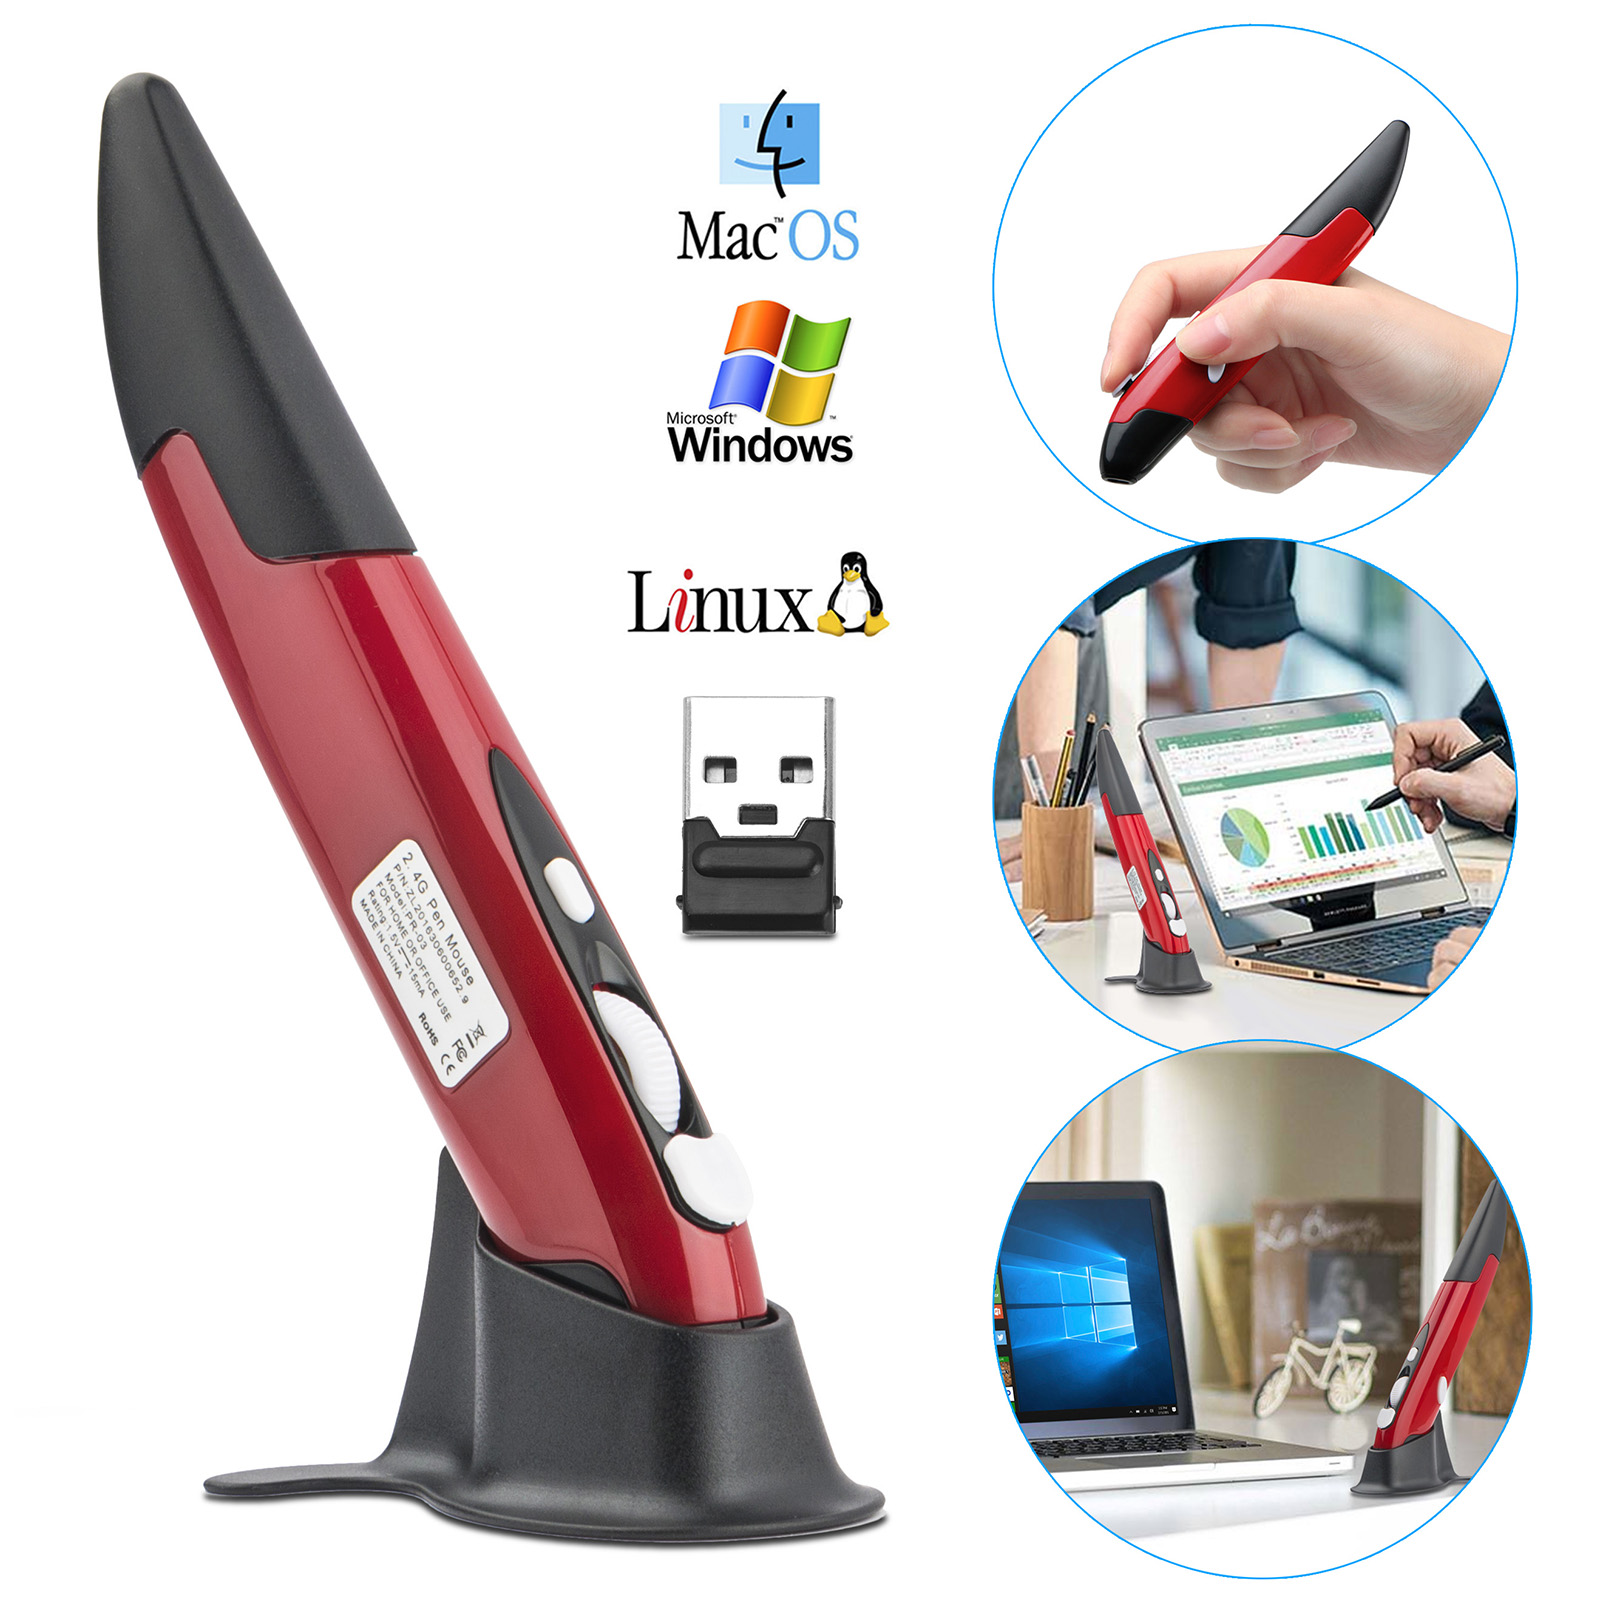 EEEKit 2.4G Write Pen Wireless Pointing Mouse Optical USB Pocket Drawing Write Pen Mini PC Mice, Red & Silver